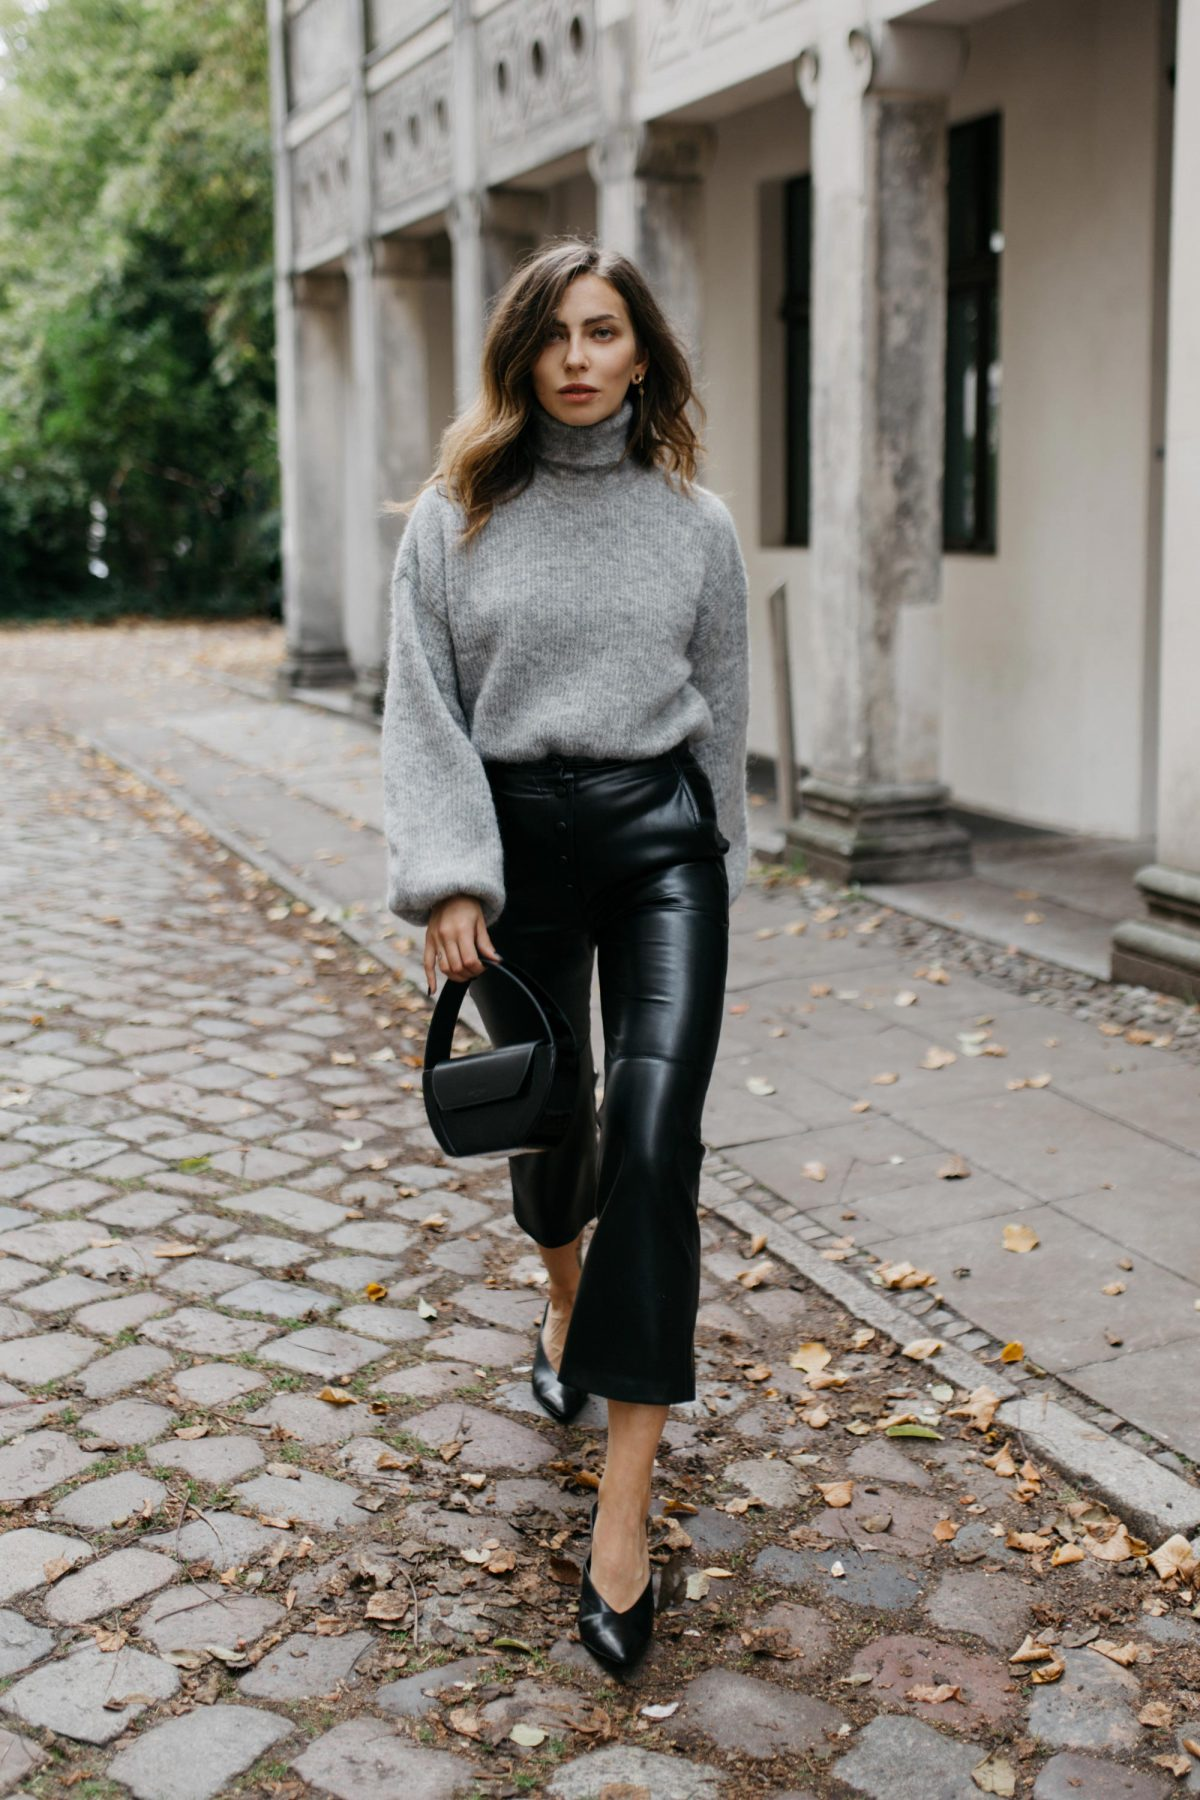 The Autumn Chic